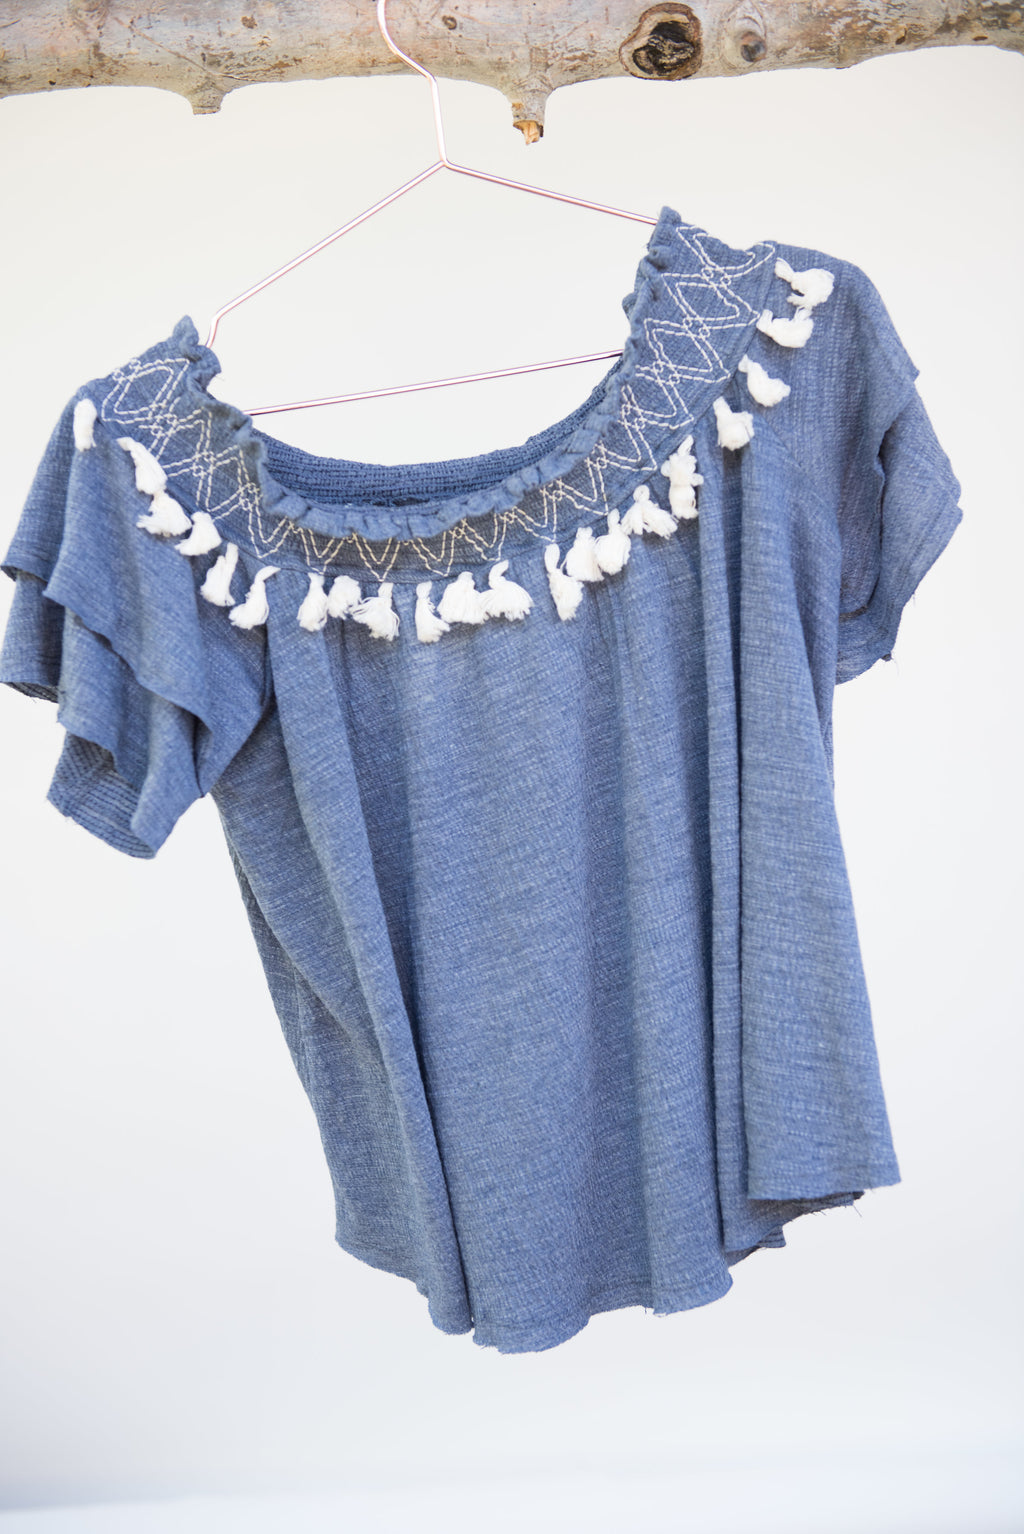 Elk Rapid Tassel Top